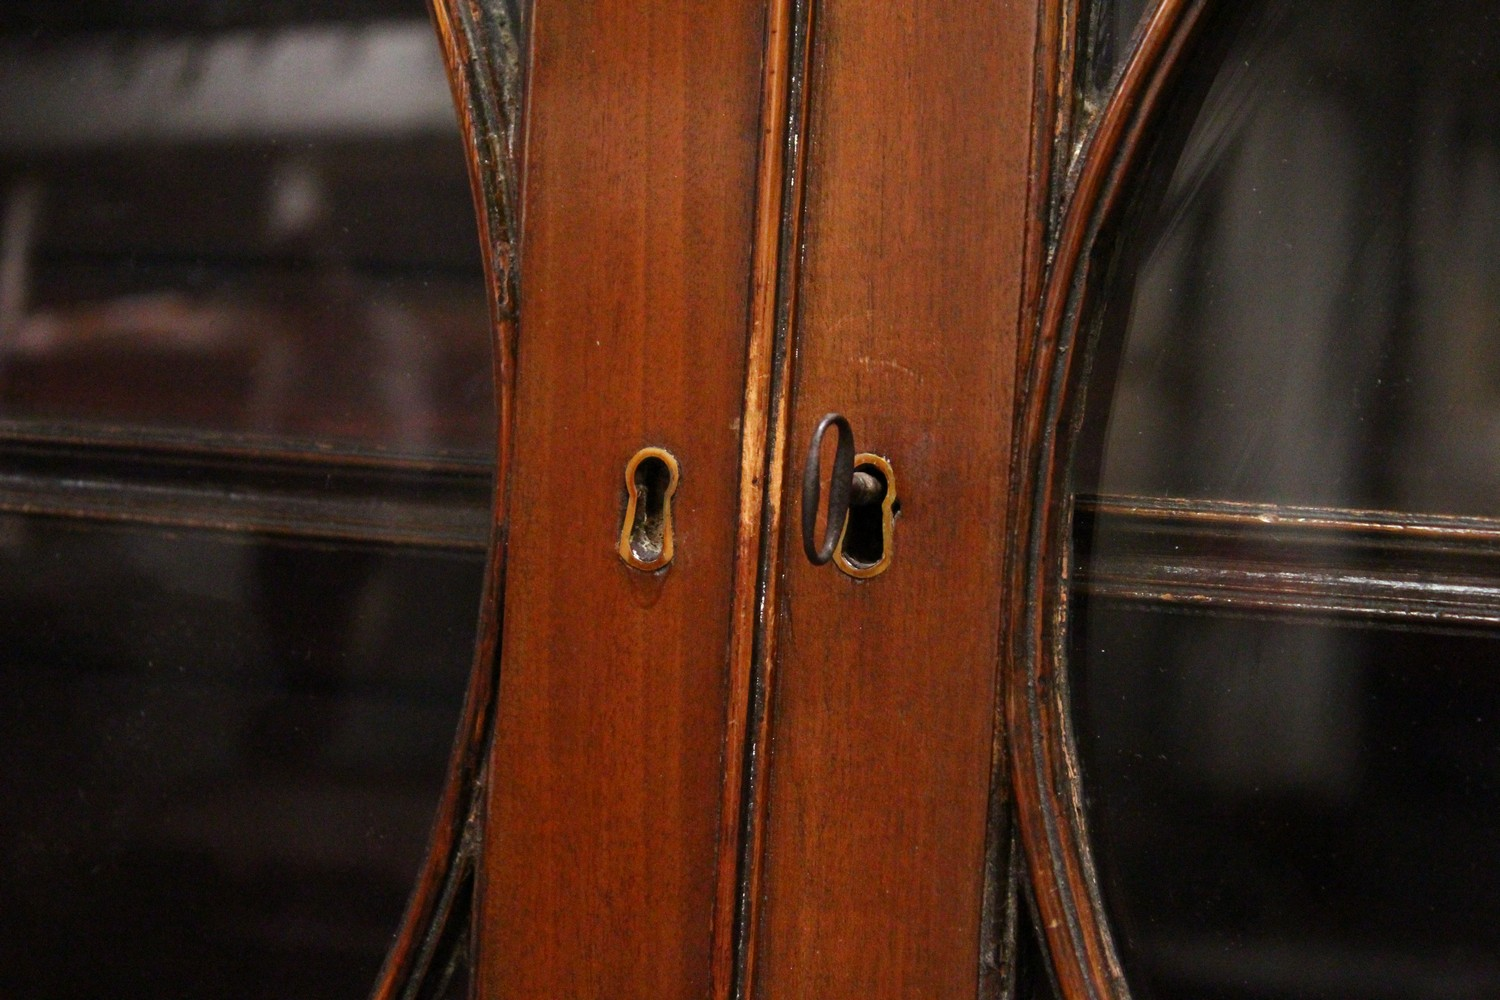 A GEORGE III DESIGN MAHOGANY CUPBOARD BOOKCASE, 19TH CENTURY, with a moulded cornice, pair of - Image 3 of 10